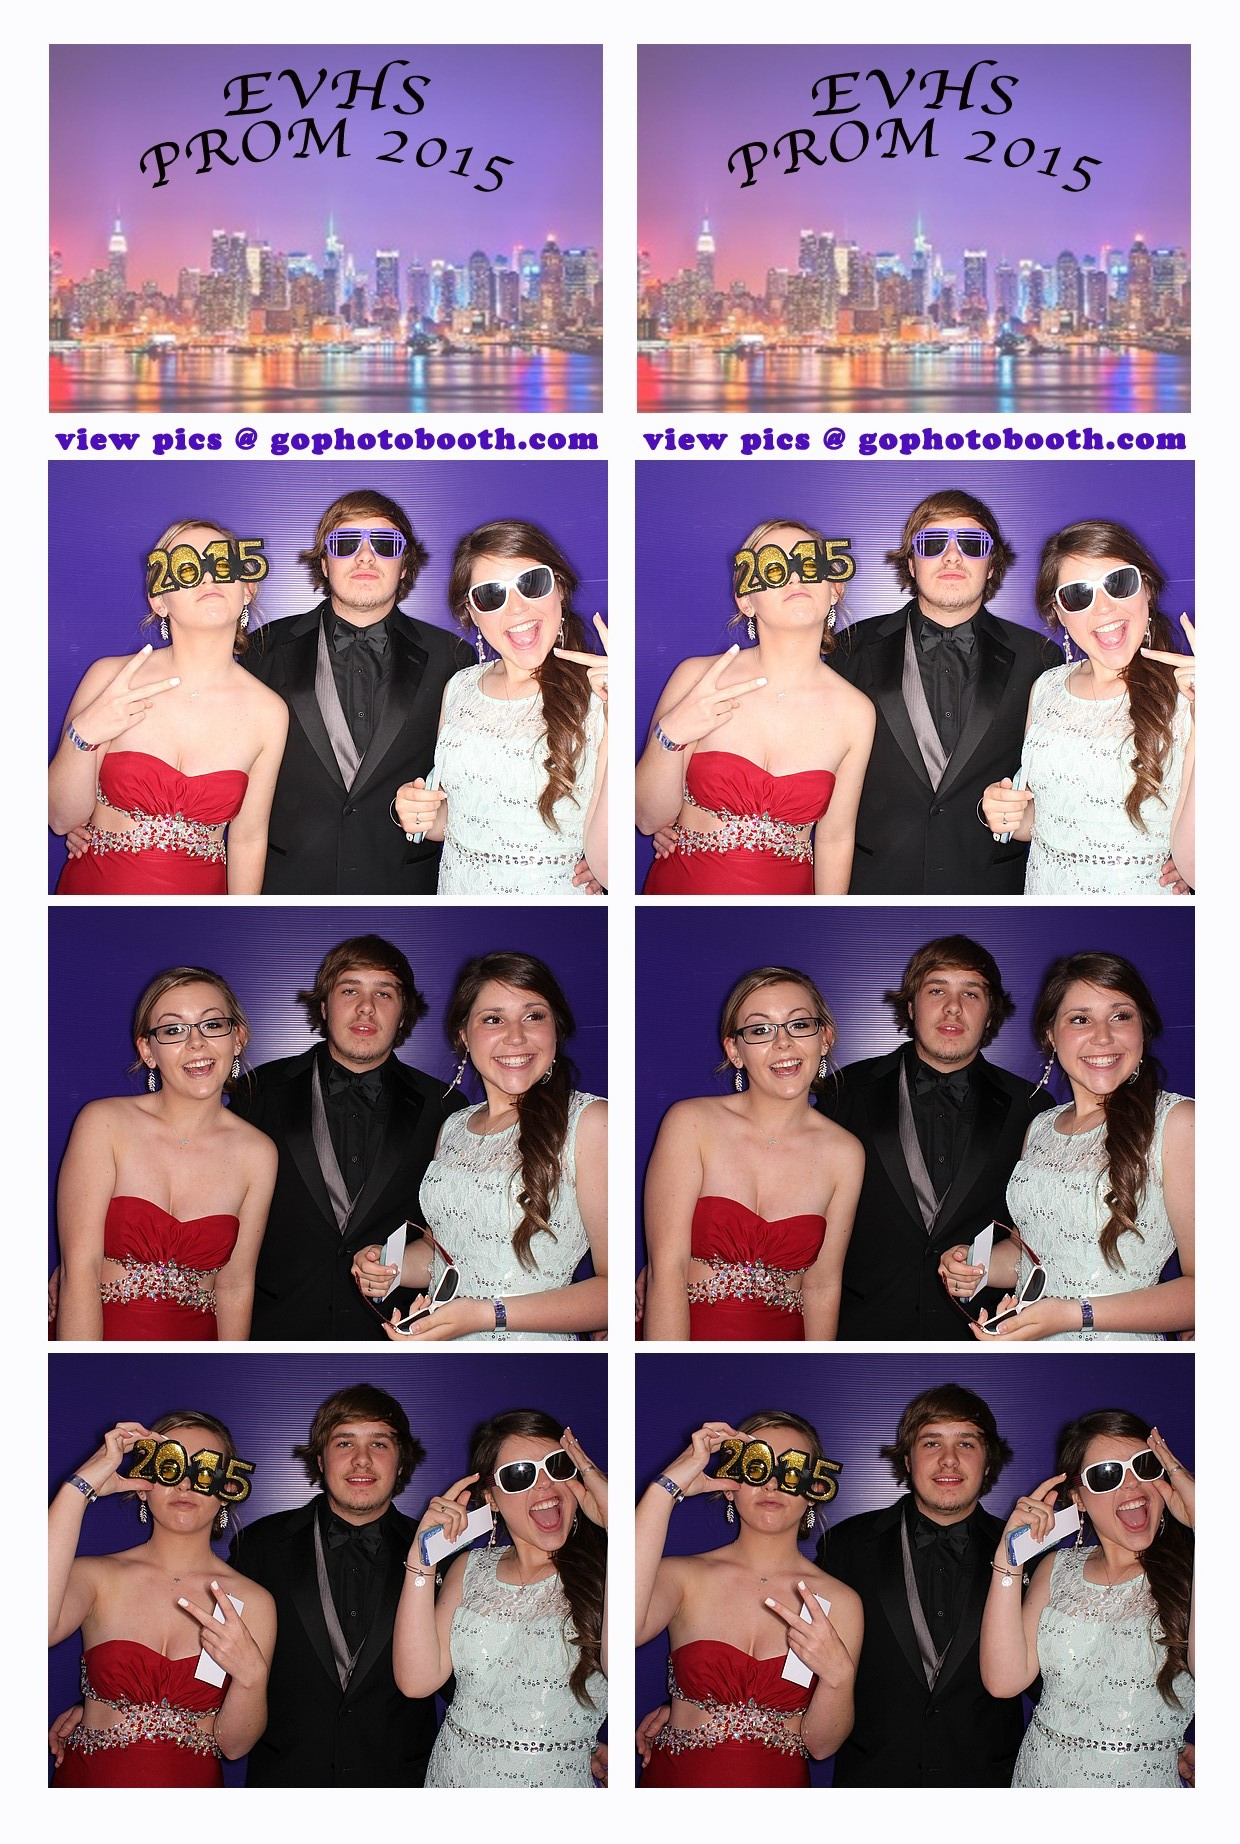 EVHS Prom 2015